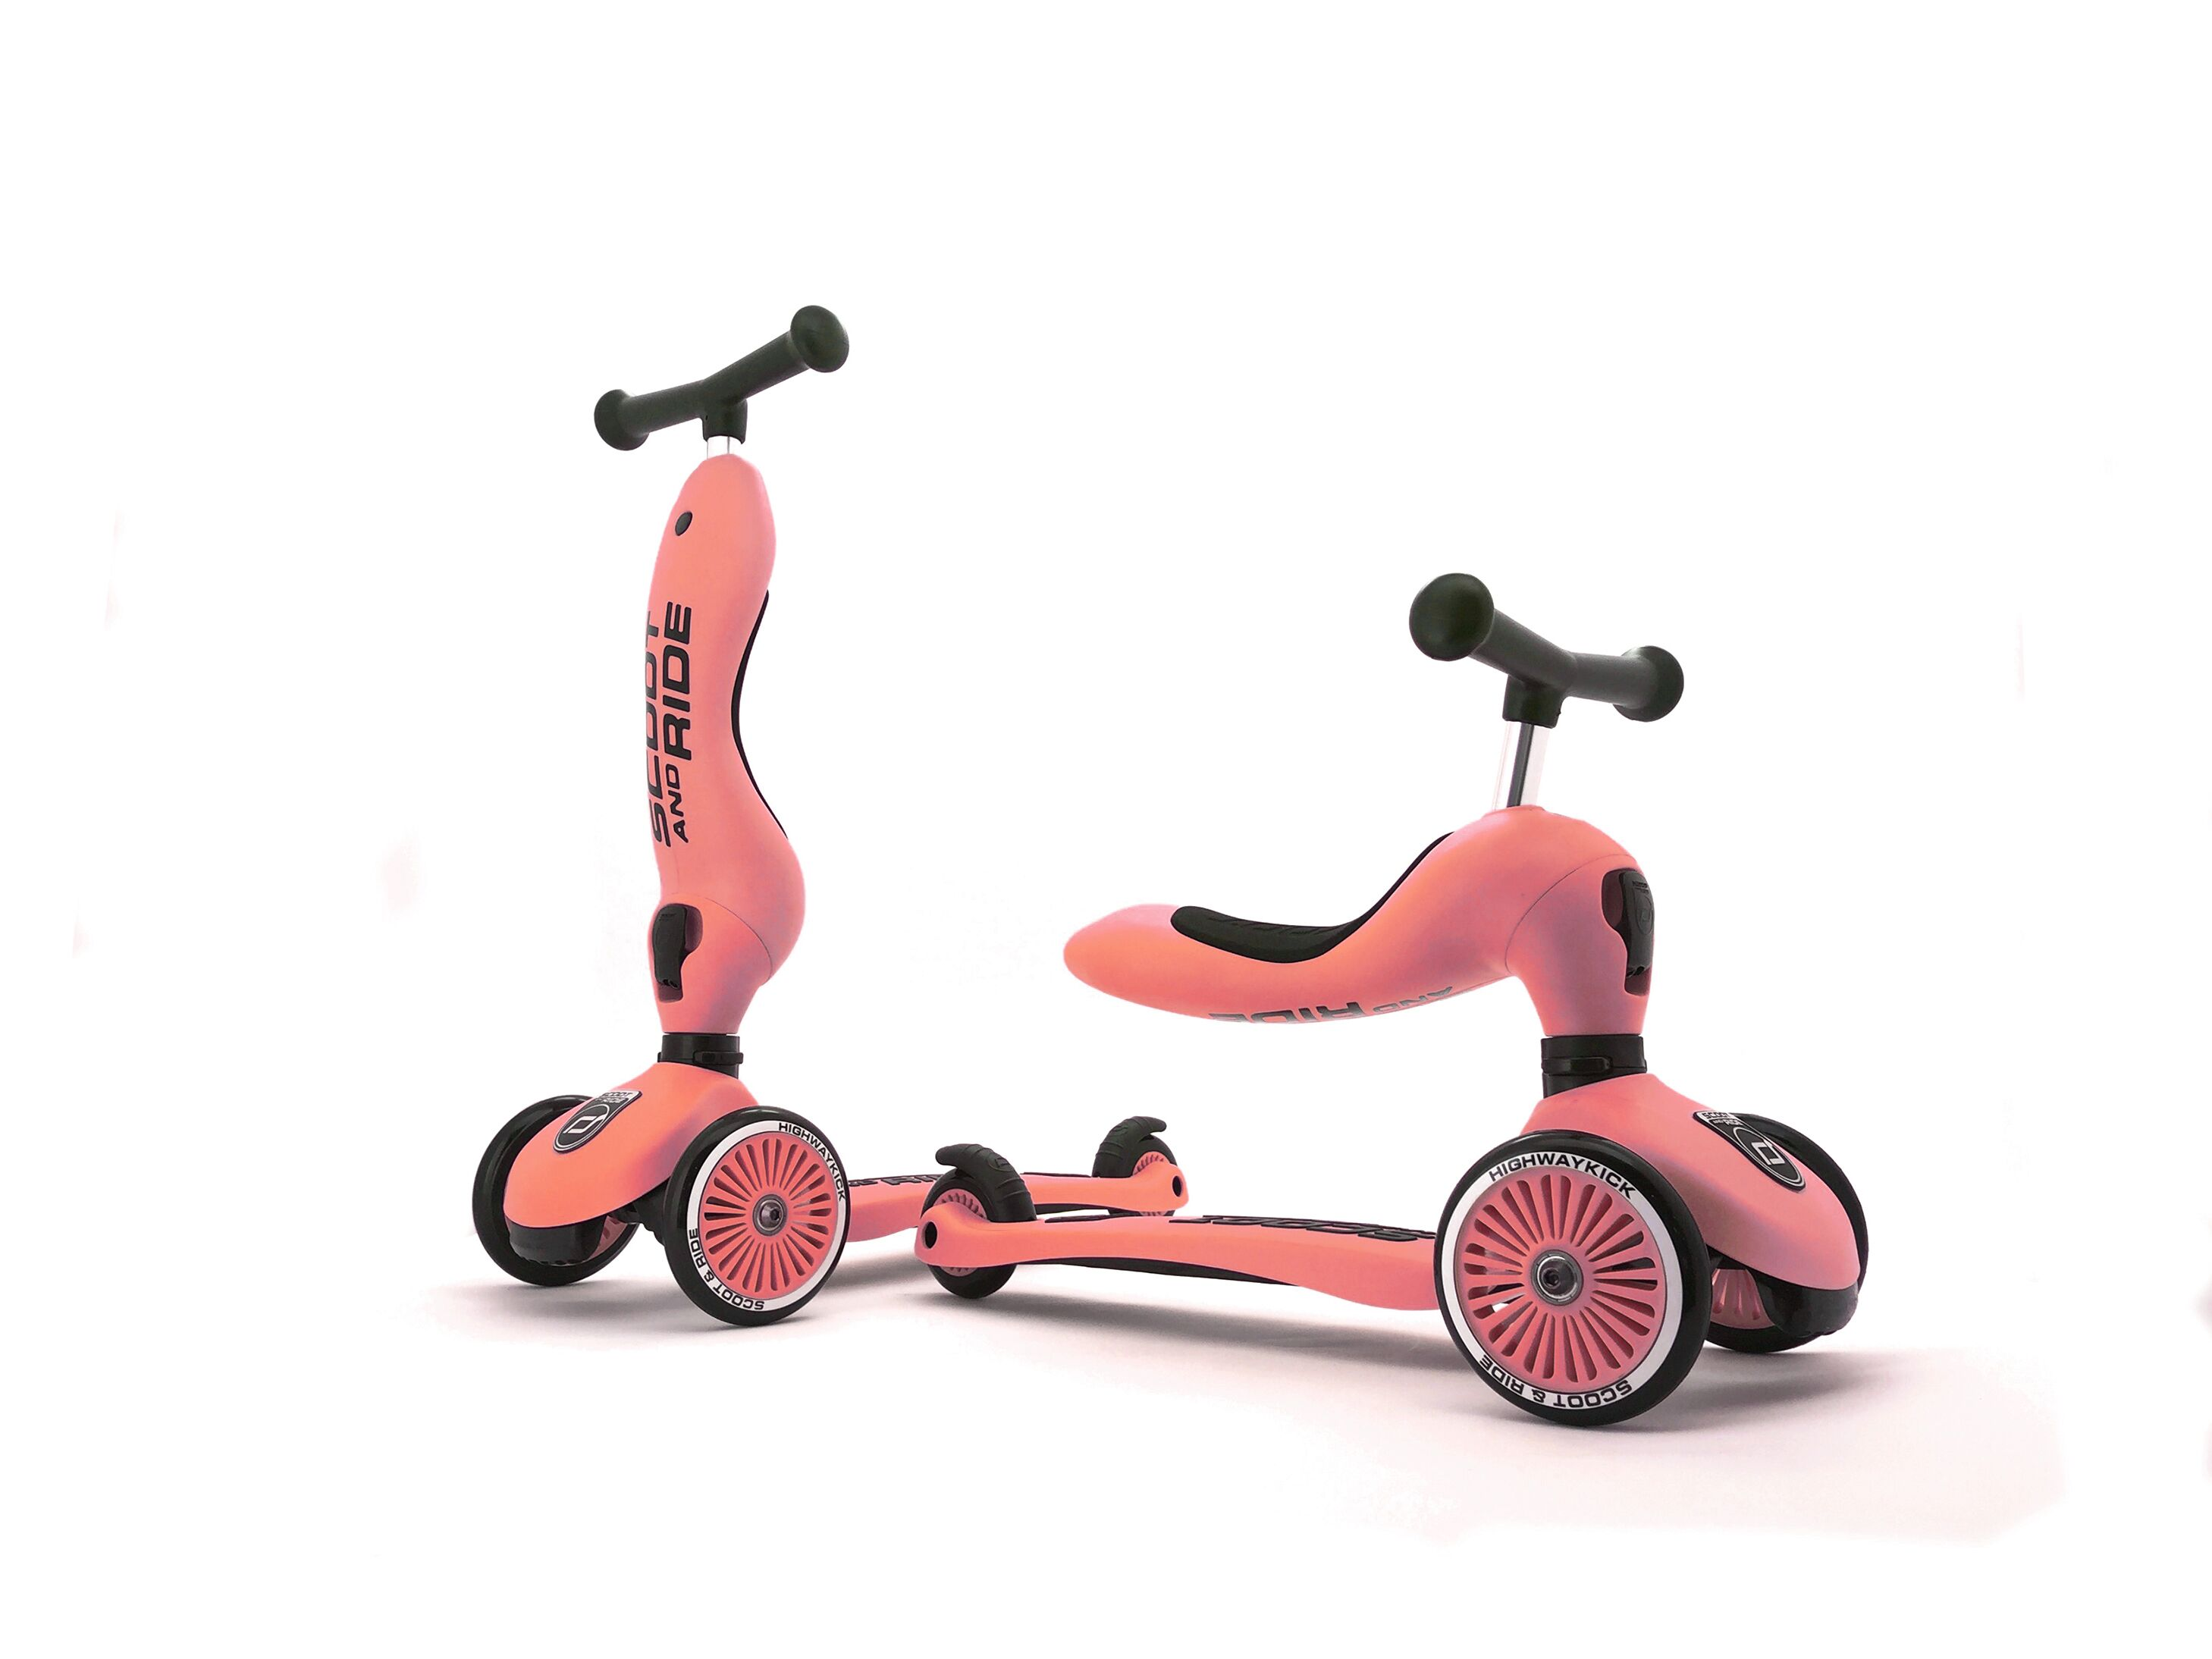 Scoot and Ride - 2 1 Peach | løbecykel og løbehjul